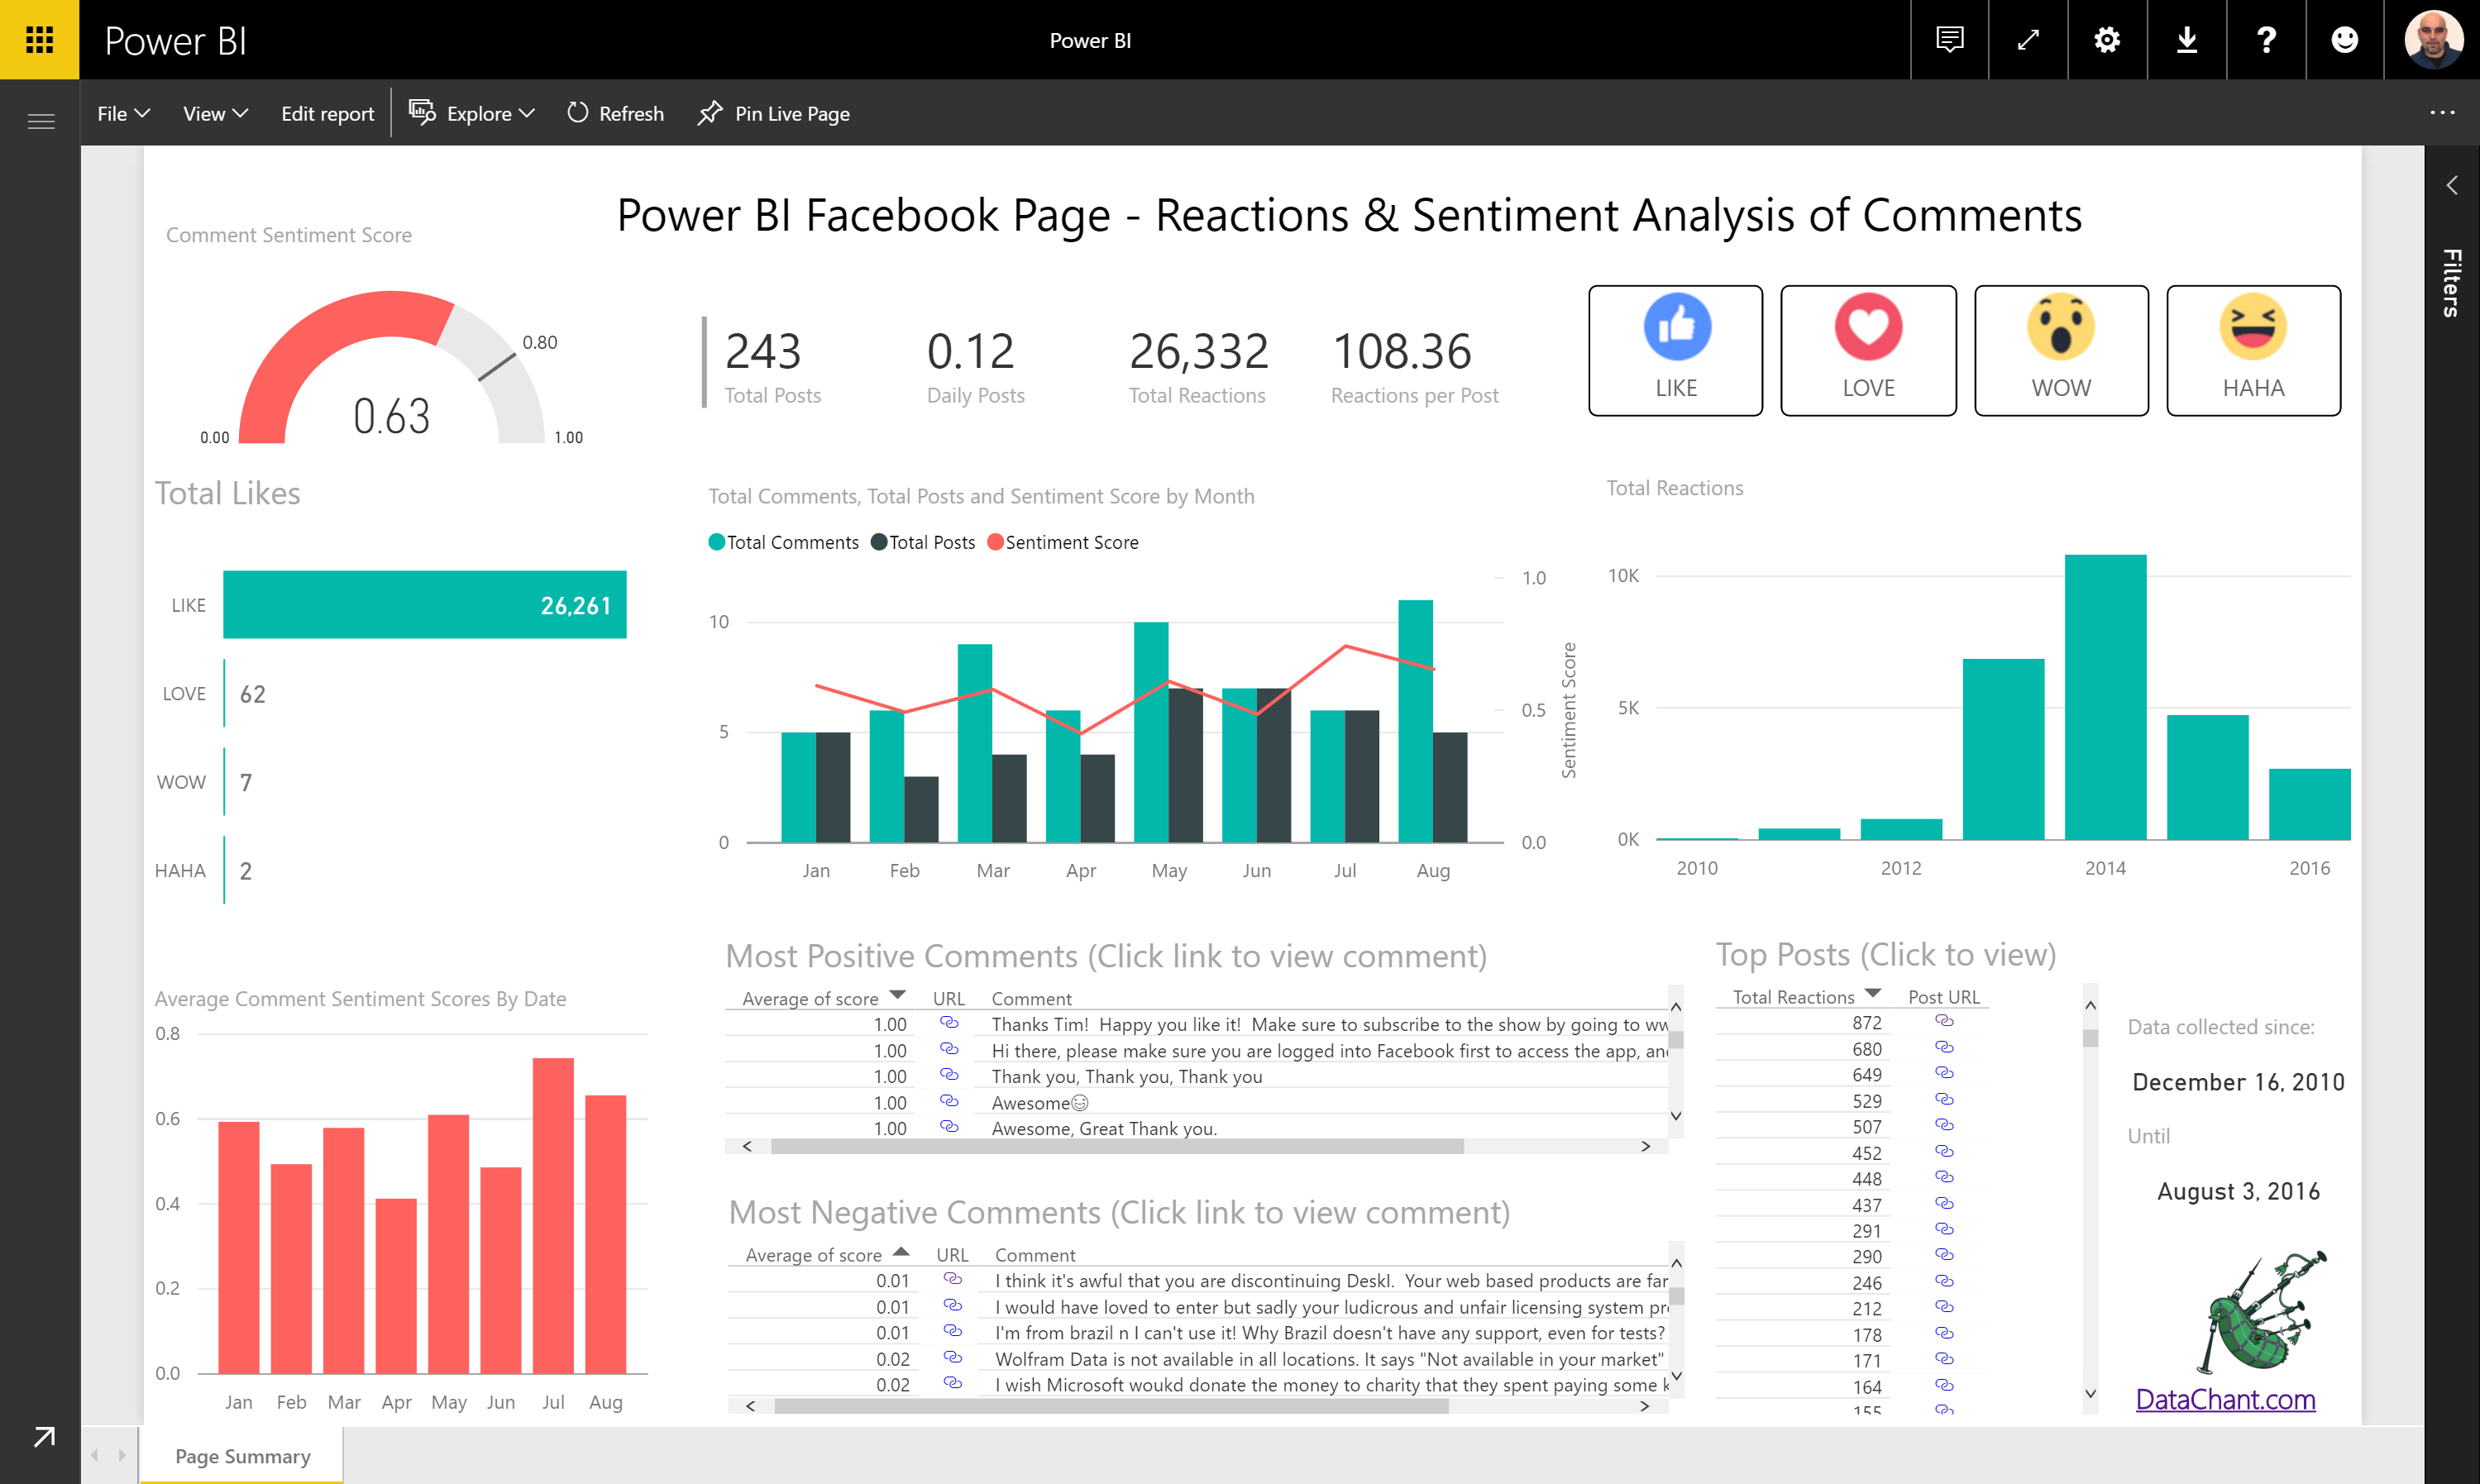 Sentiment Analysis of Comments & Reactions to Power BI Facebook Posts